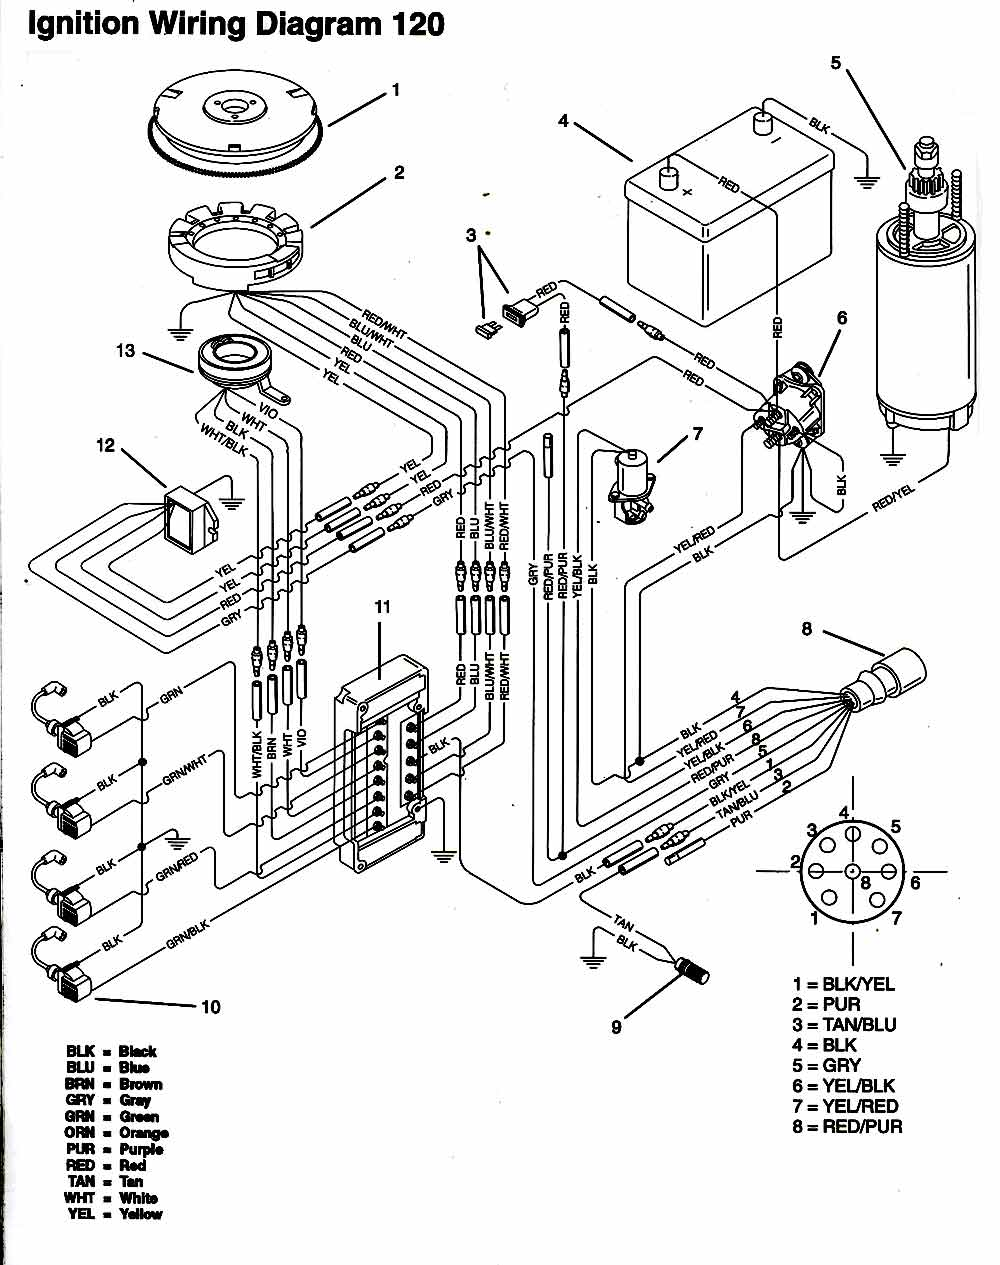 90 Hp Mercury Outboard Wiring Diagram 2 90 Hp 4 Stroke Mercury Outboard Diagram Wiring And Engine Diagram Download A Repair Manual To Your Computer Tablet Or Smart Phone Instantly Trends In Youtube